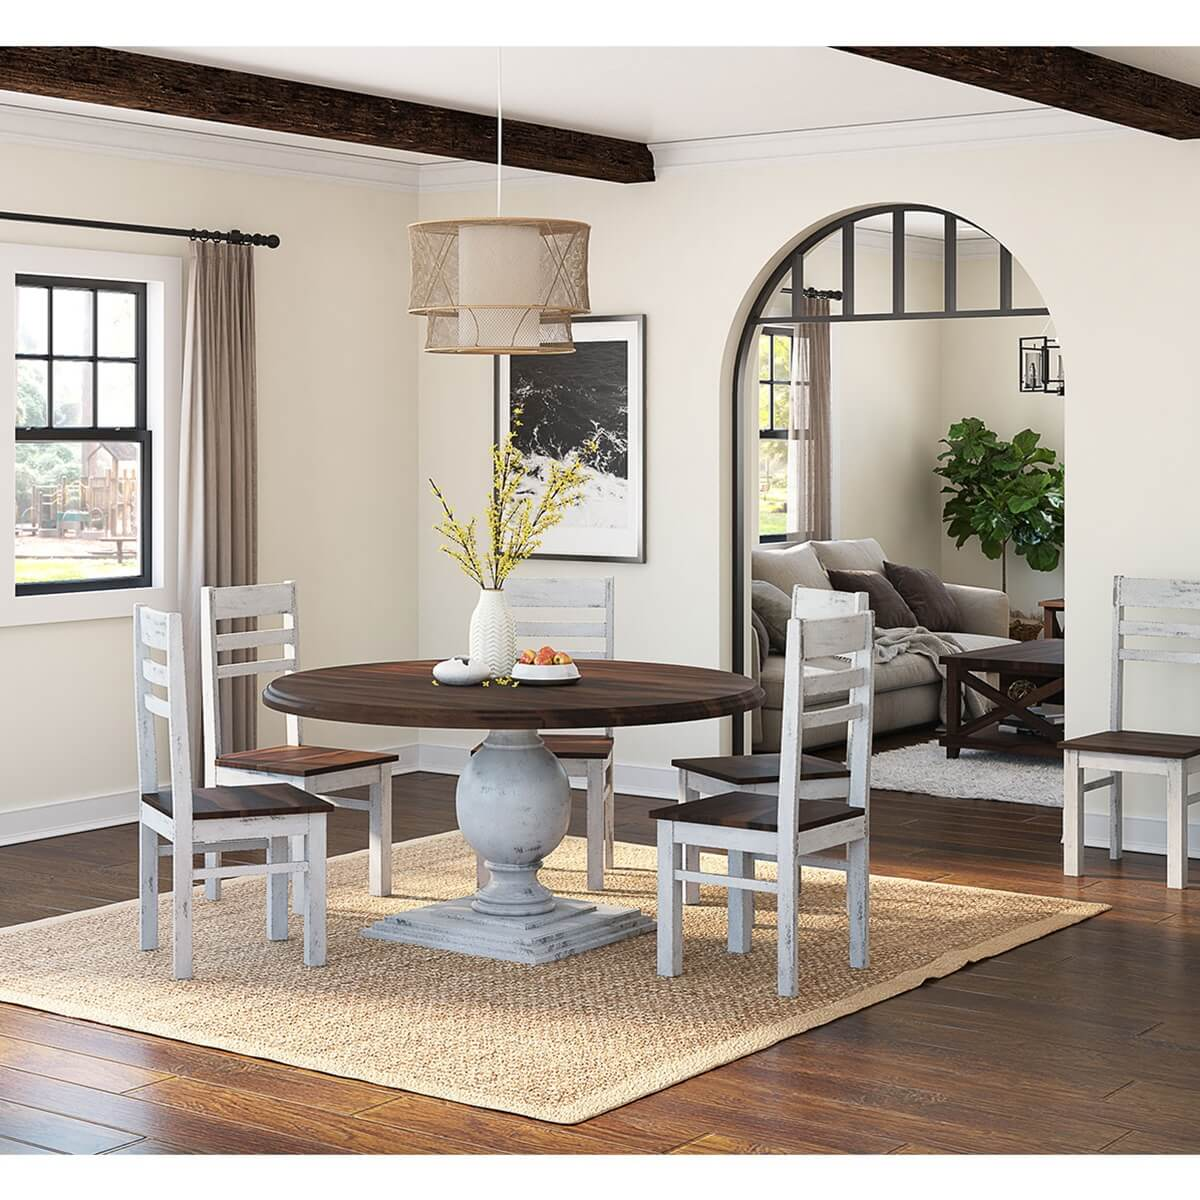 "Round Dining Room Table Seats 8: Illinois Two Tone Large Round 72"" Dining Table With 8"